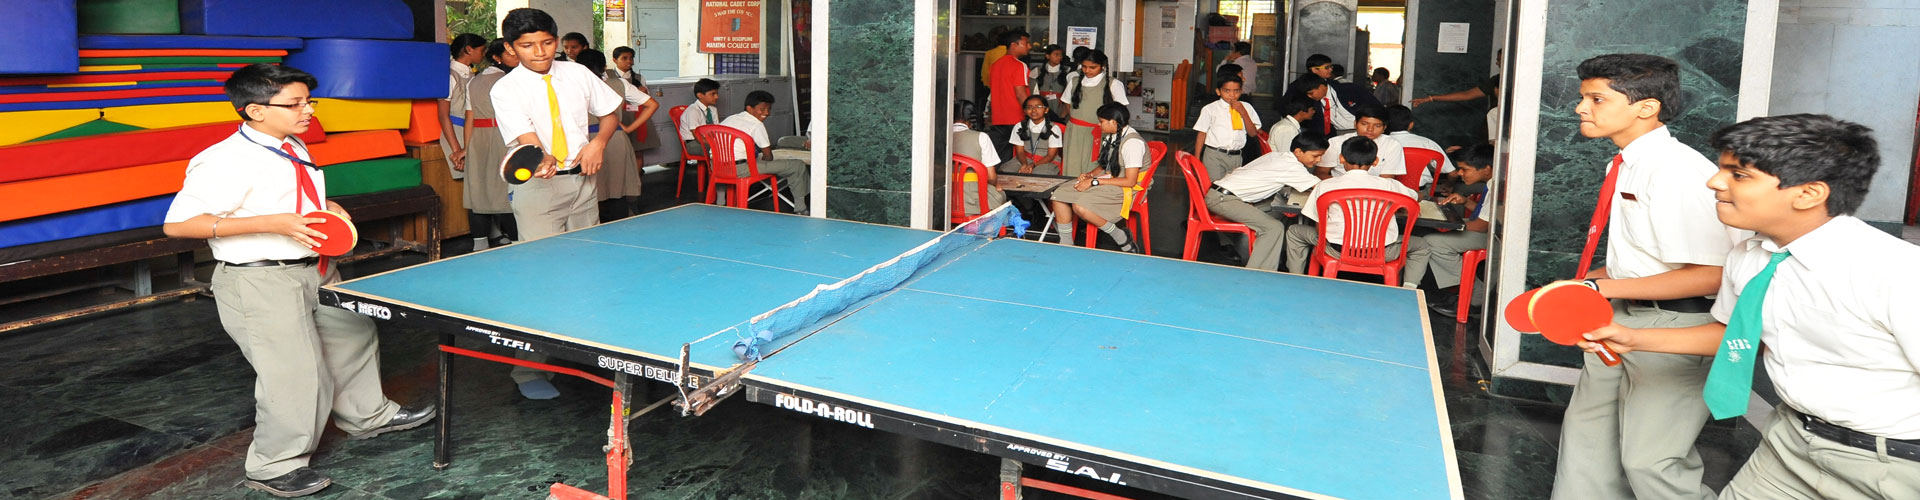 INDOOR-GAMES-TABLE-TENNIS